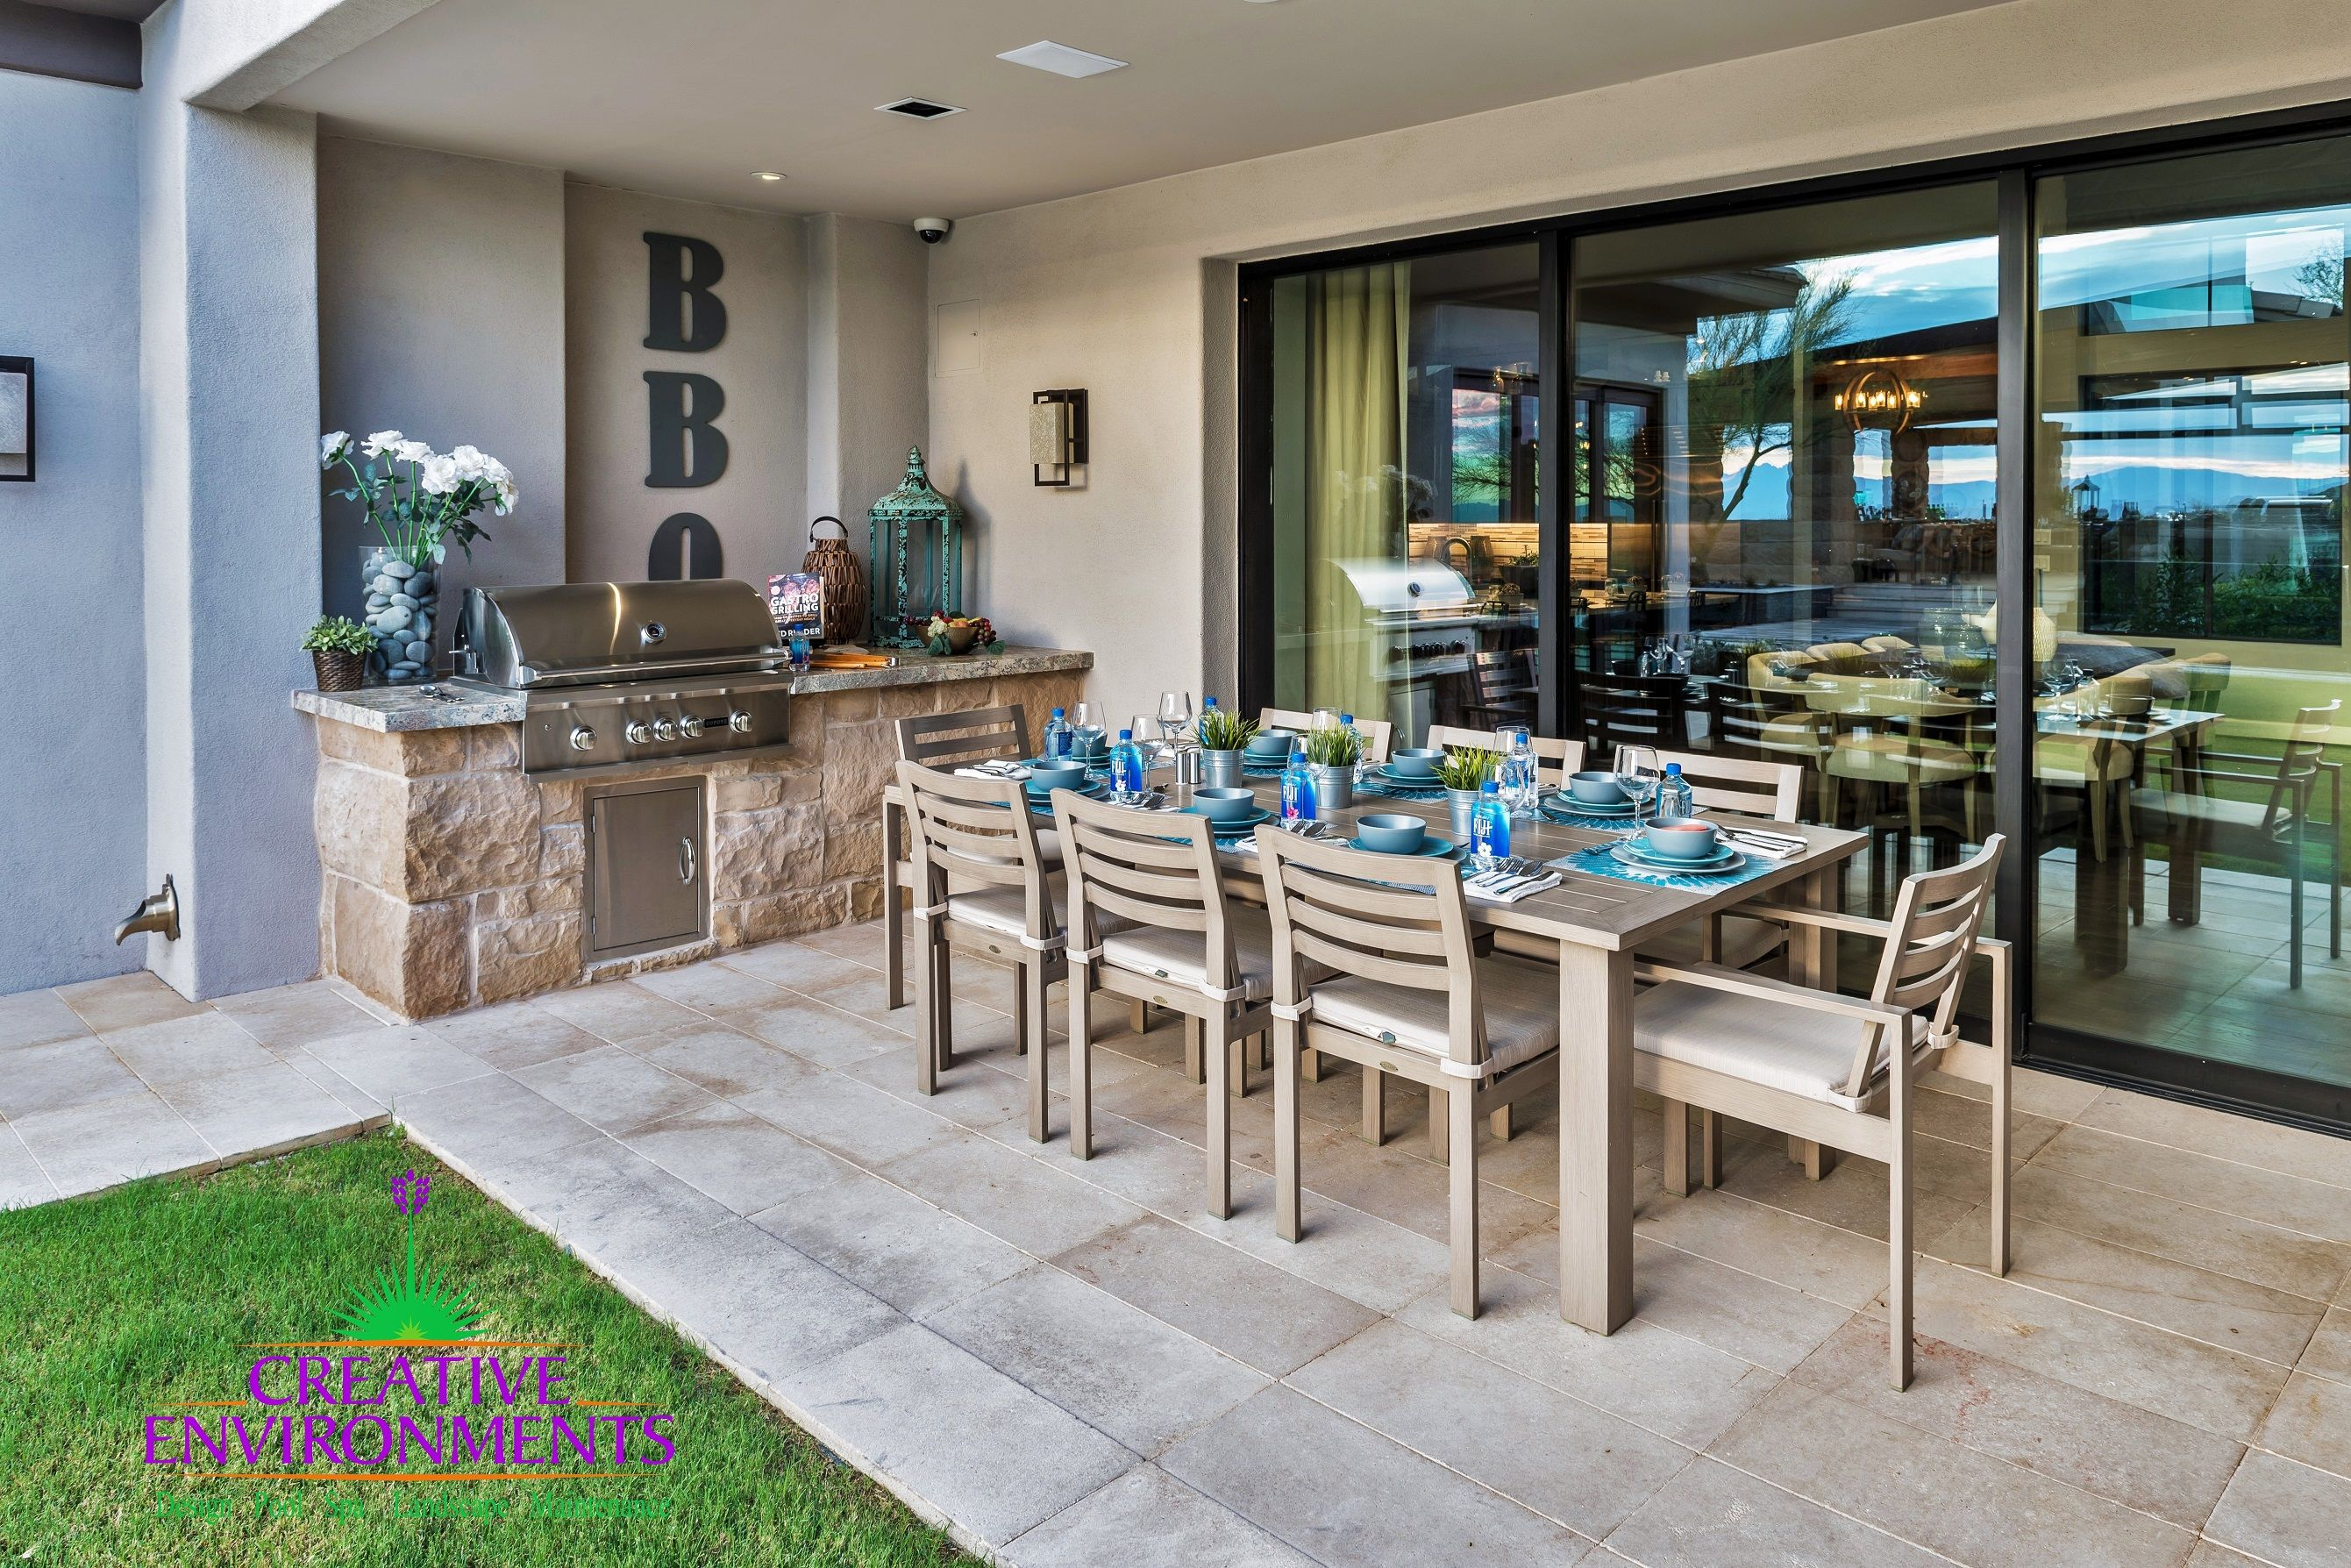 Pin by Creative Environments on Talon Ranch | Custom pools ... on Outdoor Living Space Company id=24738